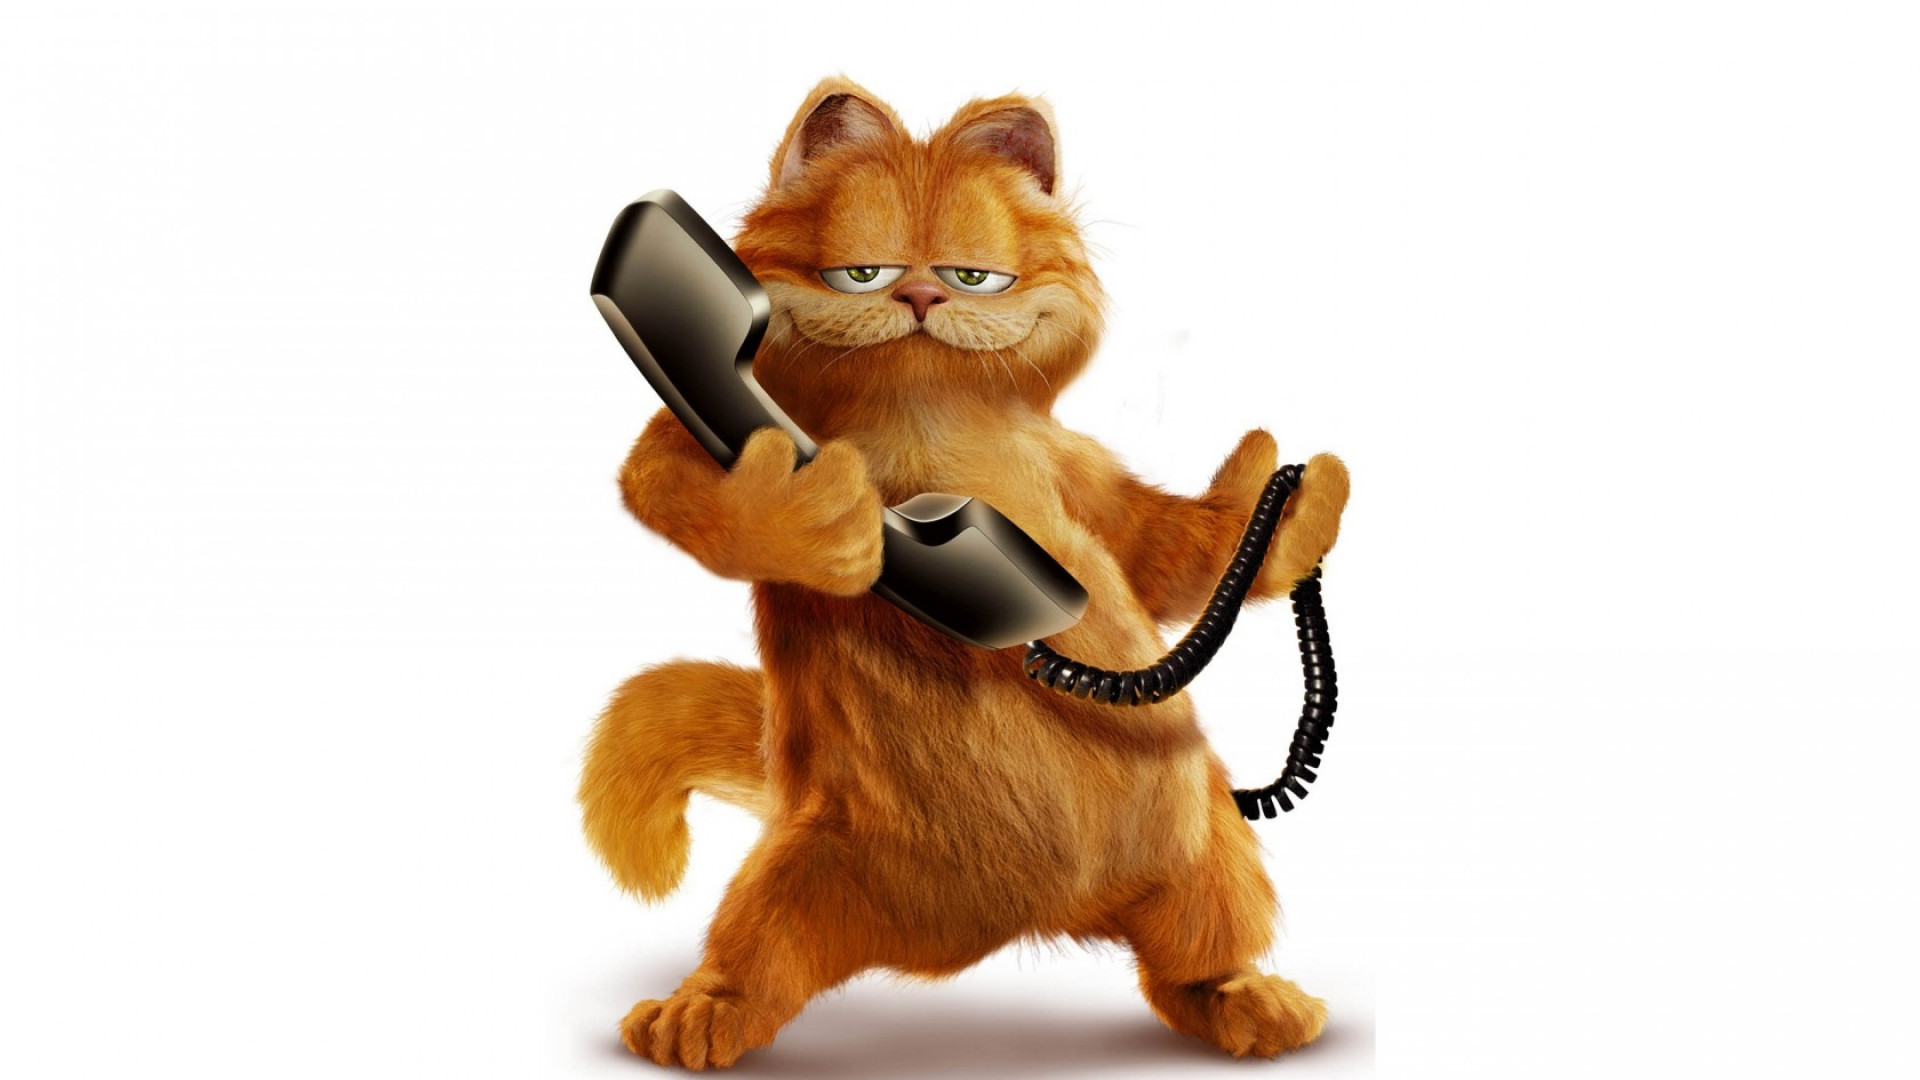 1920x1080 Preview wallpaper garfield, cat, cartoon, phone